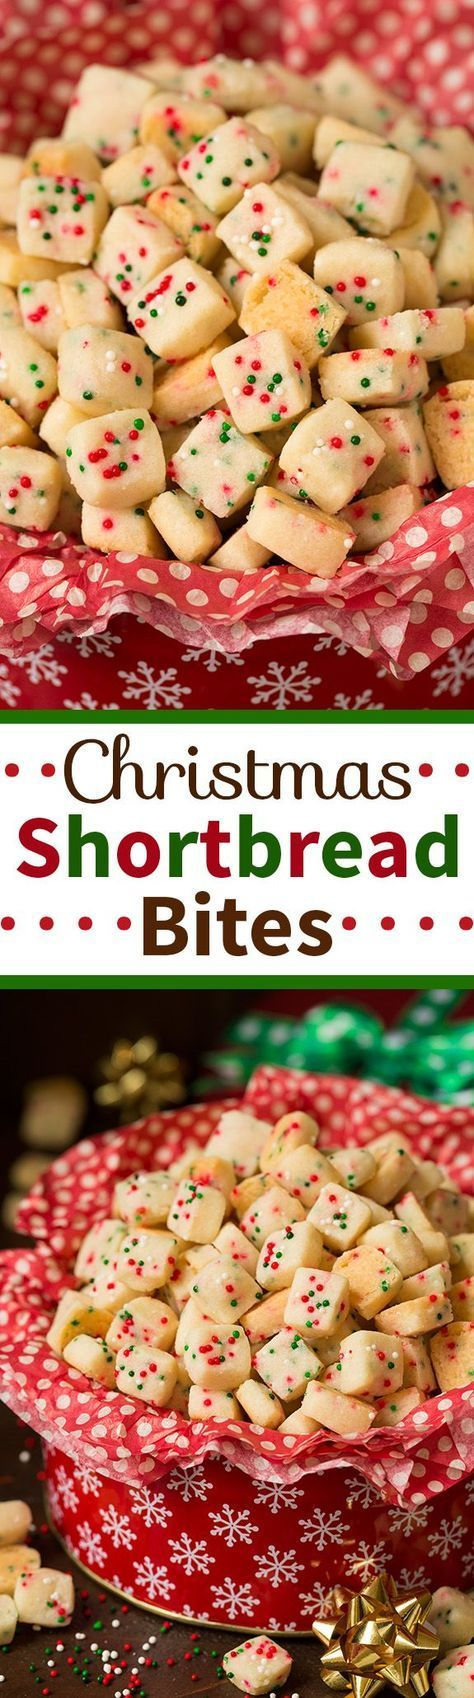 These shortbread bites look so yummy and festive! I would love to make these with my family this Christmas season. Sponsored by Dunkin' Donuts. #DunkinAtHome #BakerySeries #ad